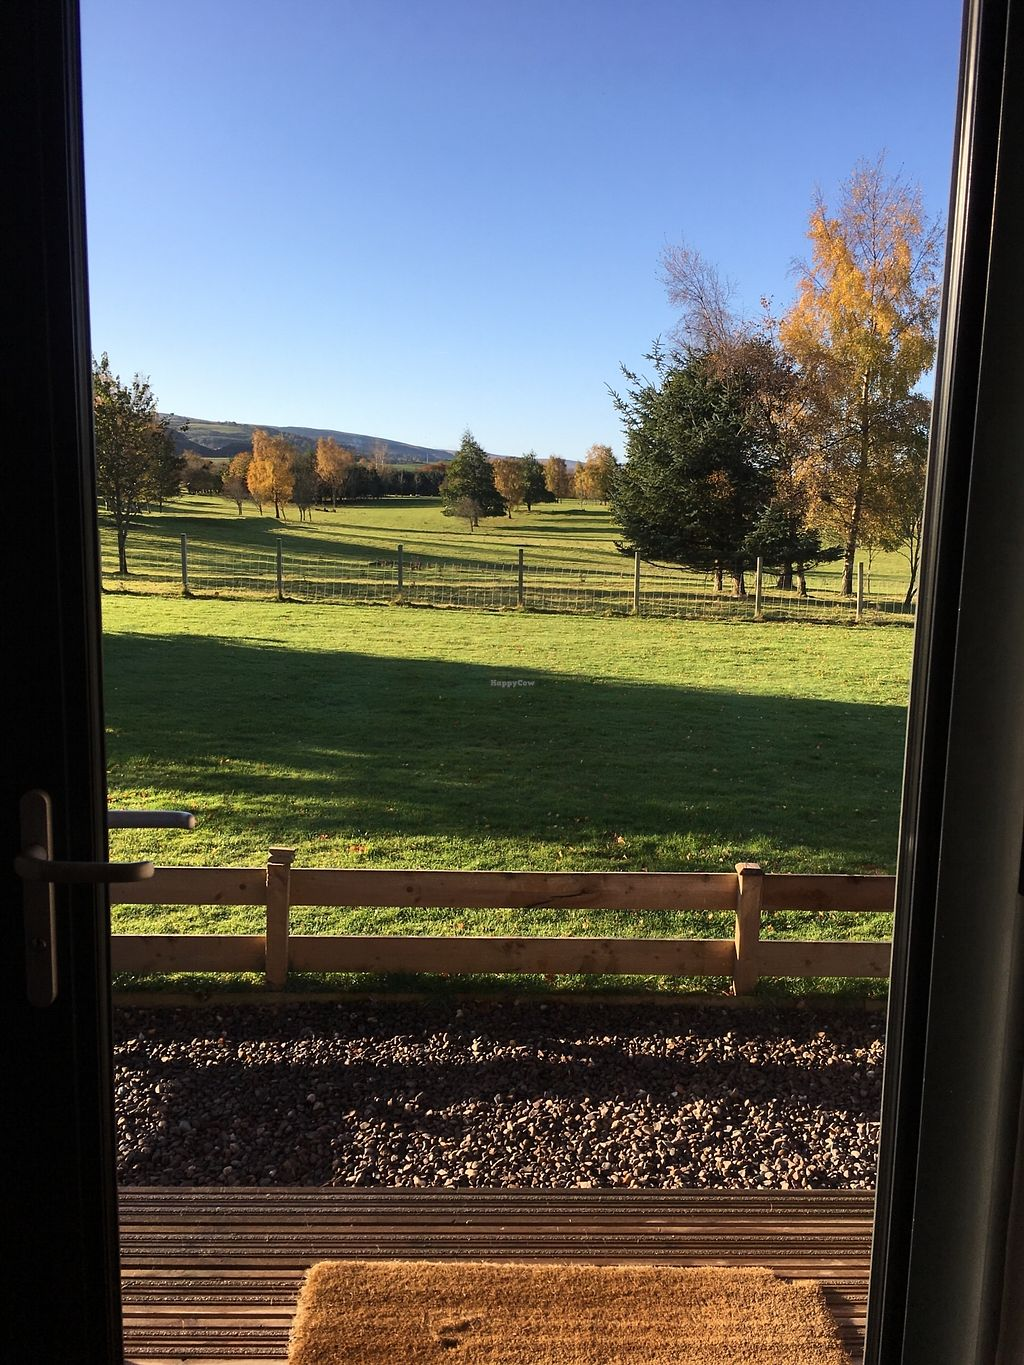 """Photo of Whitemoss Lodge B&B  by <a href=""""/members/profile/radiocaz"""">radiocaz</a> <br/>Neighbourly sheep to spot <br/> November 5, 2017  - <a href='/contact/abuse/image/104264/321983'>Report</a>"""